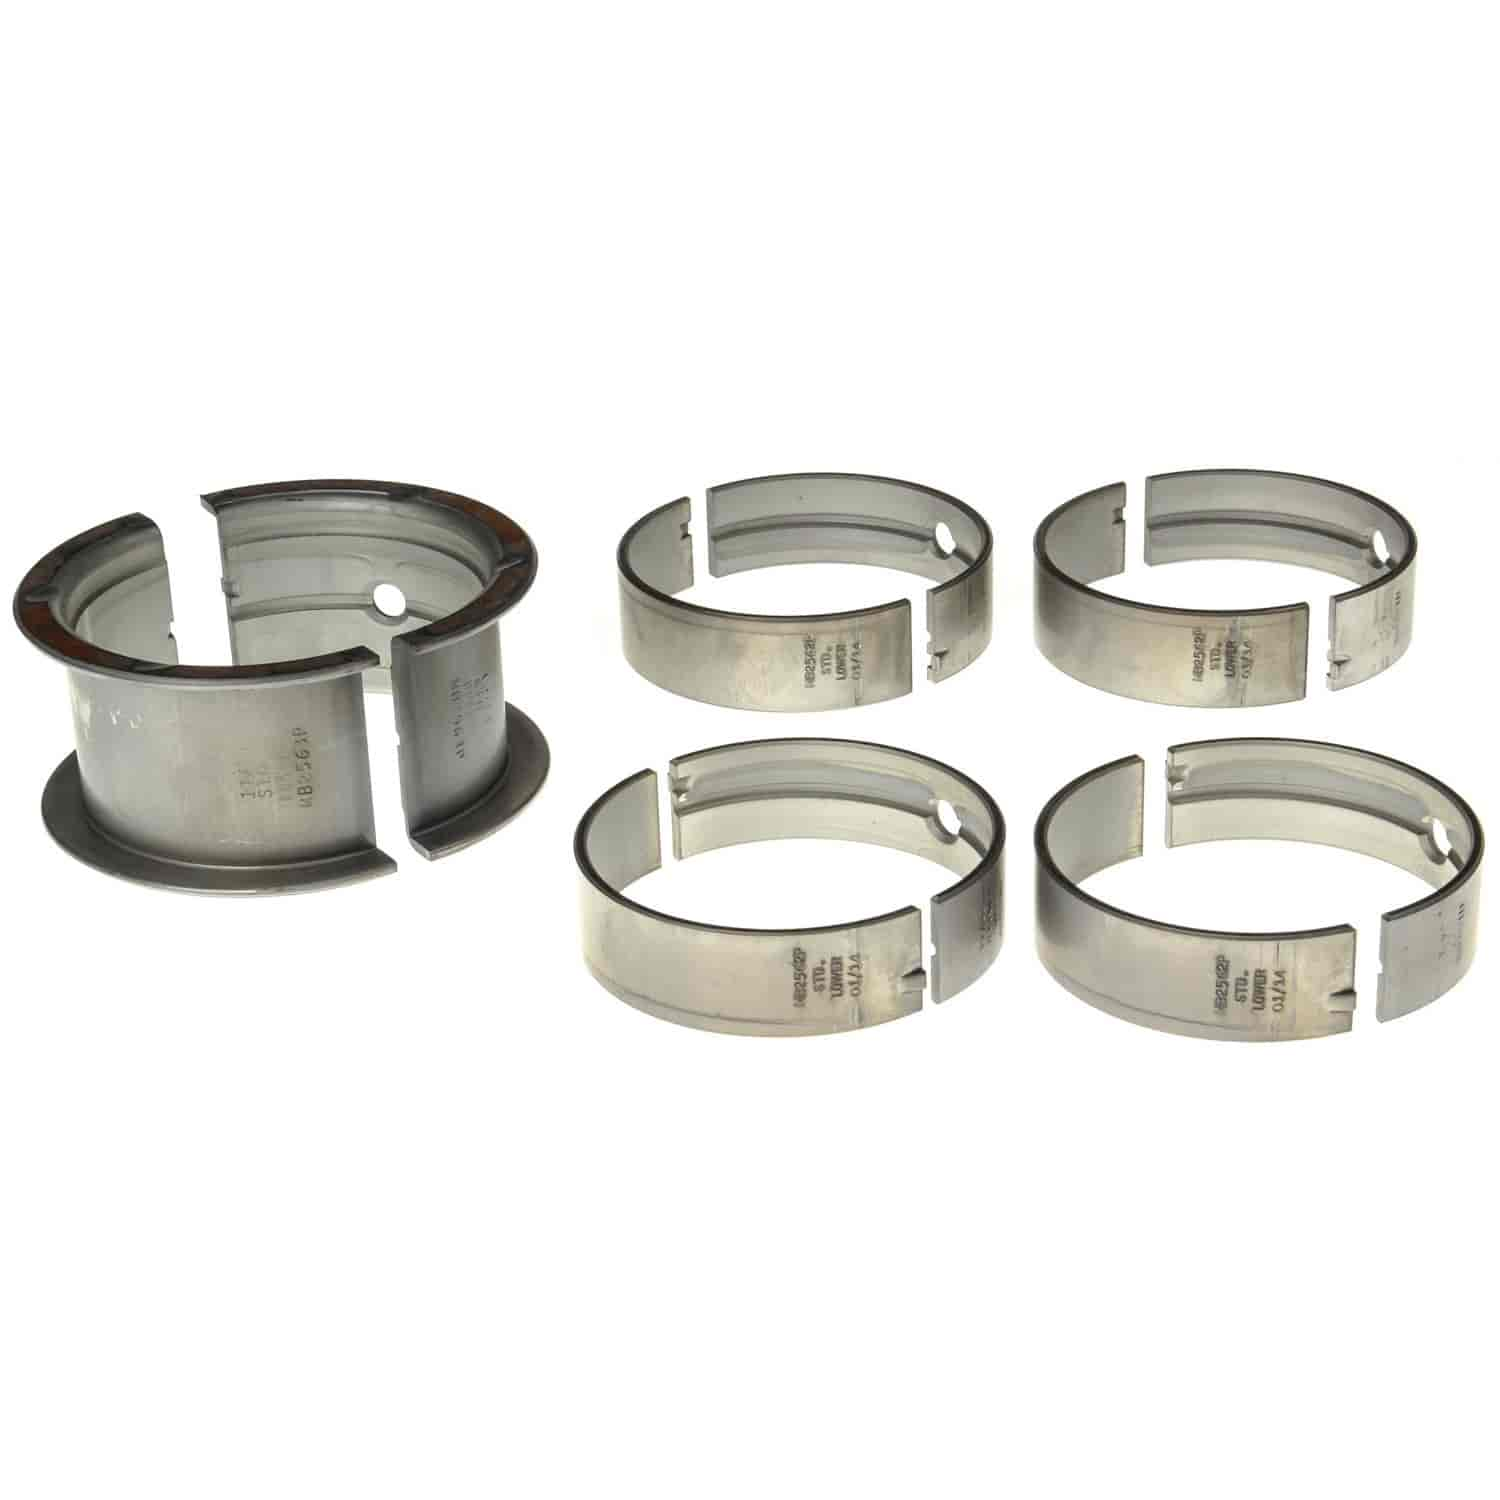 Clevite MS1038P - Clevite 77 High-Performance Bearings